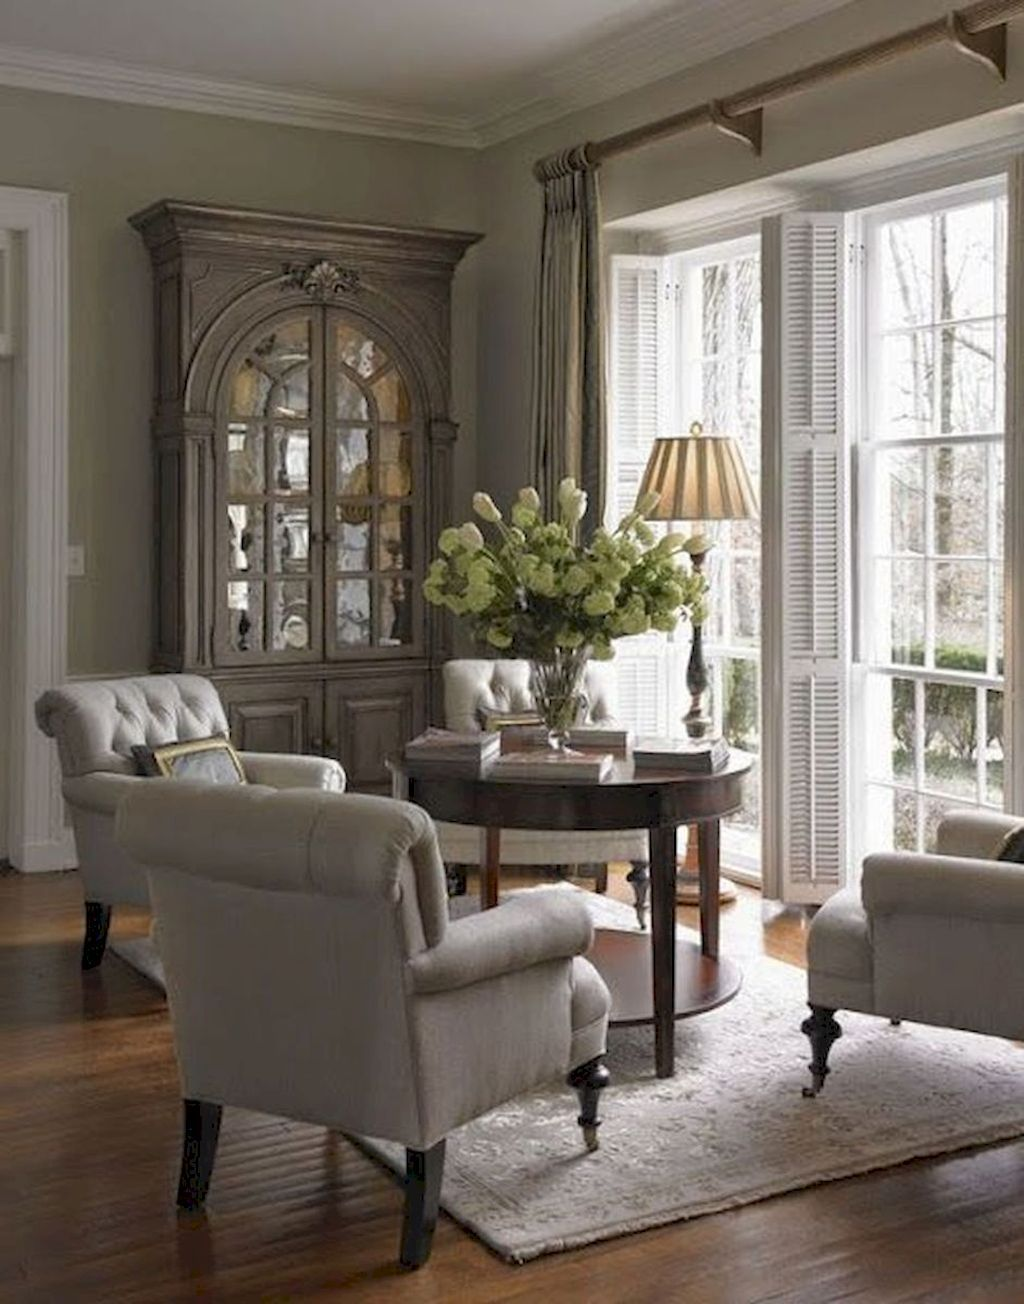 04 Beautiful French Country Living Room Ideas French Cou